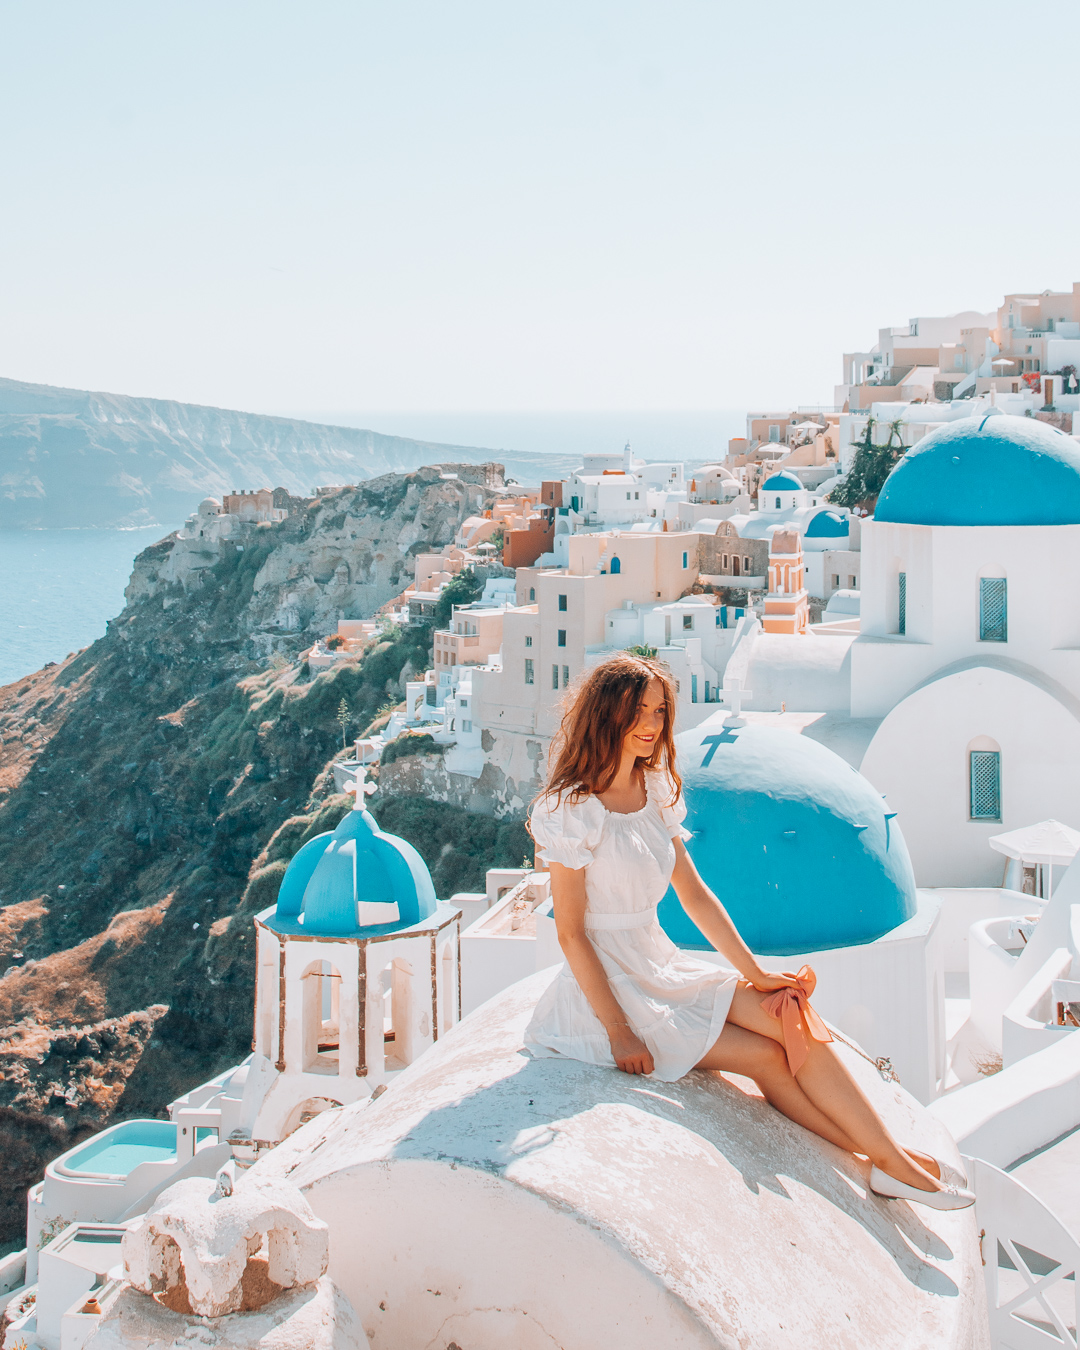 View of blue domes in Santorini